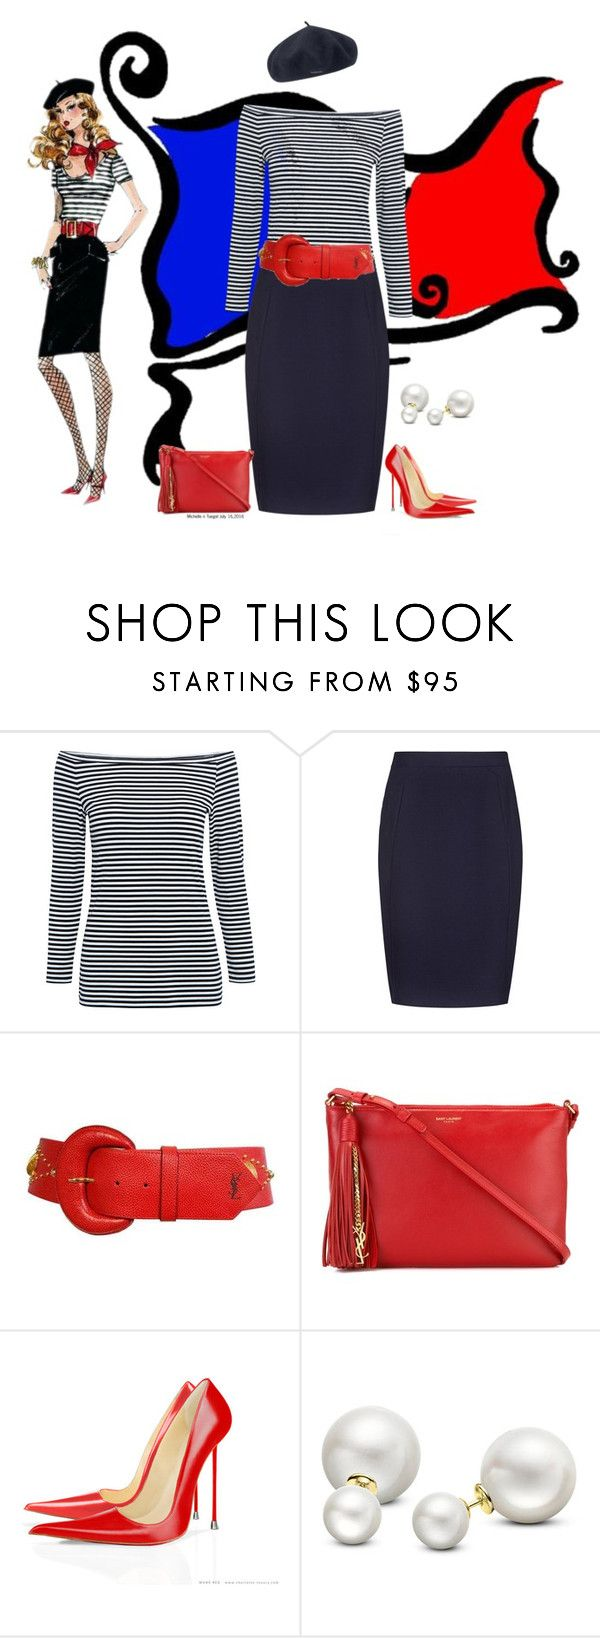 """""""And with Barbie style pumps"""" by veronababy ❤ liked on Polyvore featuring Theory, Reiss, Yves Saint Laurent, Allurez and kangol"""